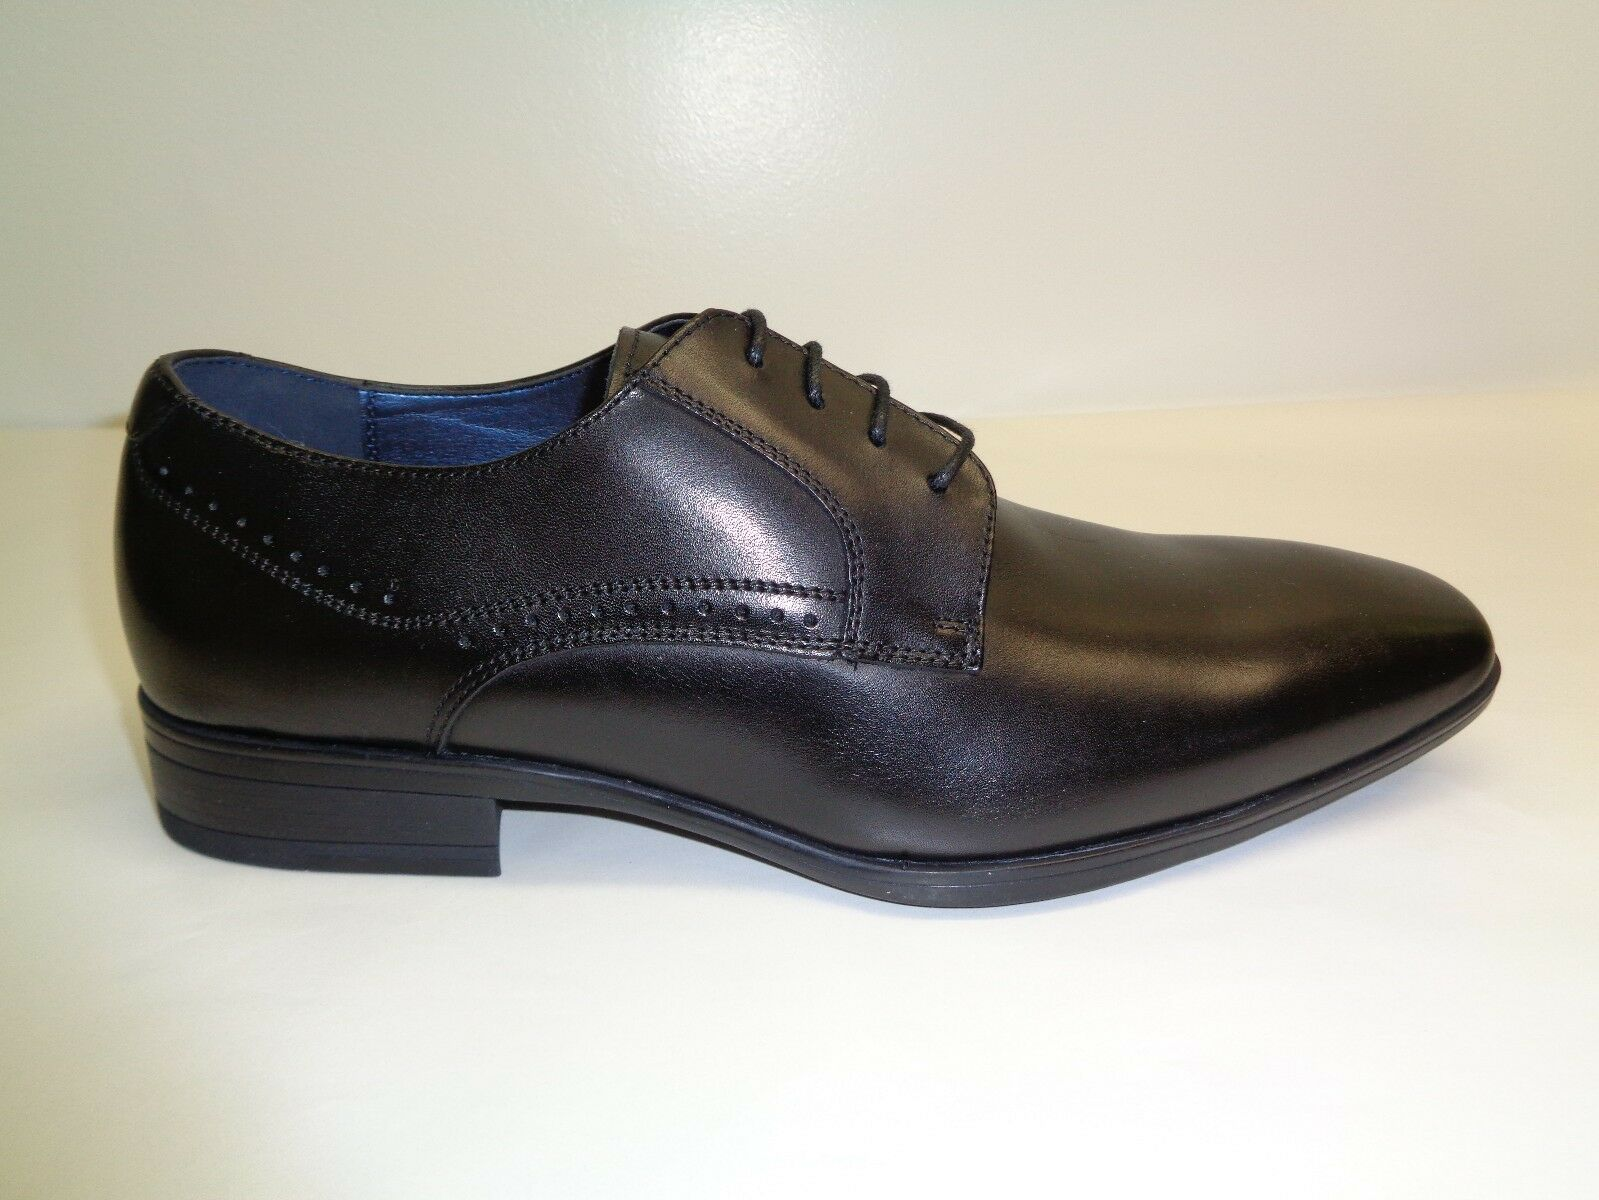 Steve Madden Size 7.5 RIVARS Black Leather Lace Up Oxfords New Mens shoes